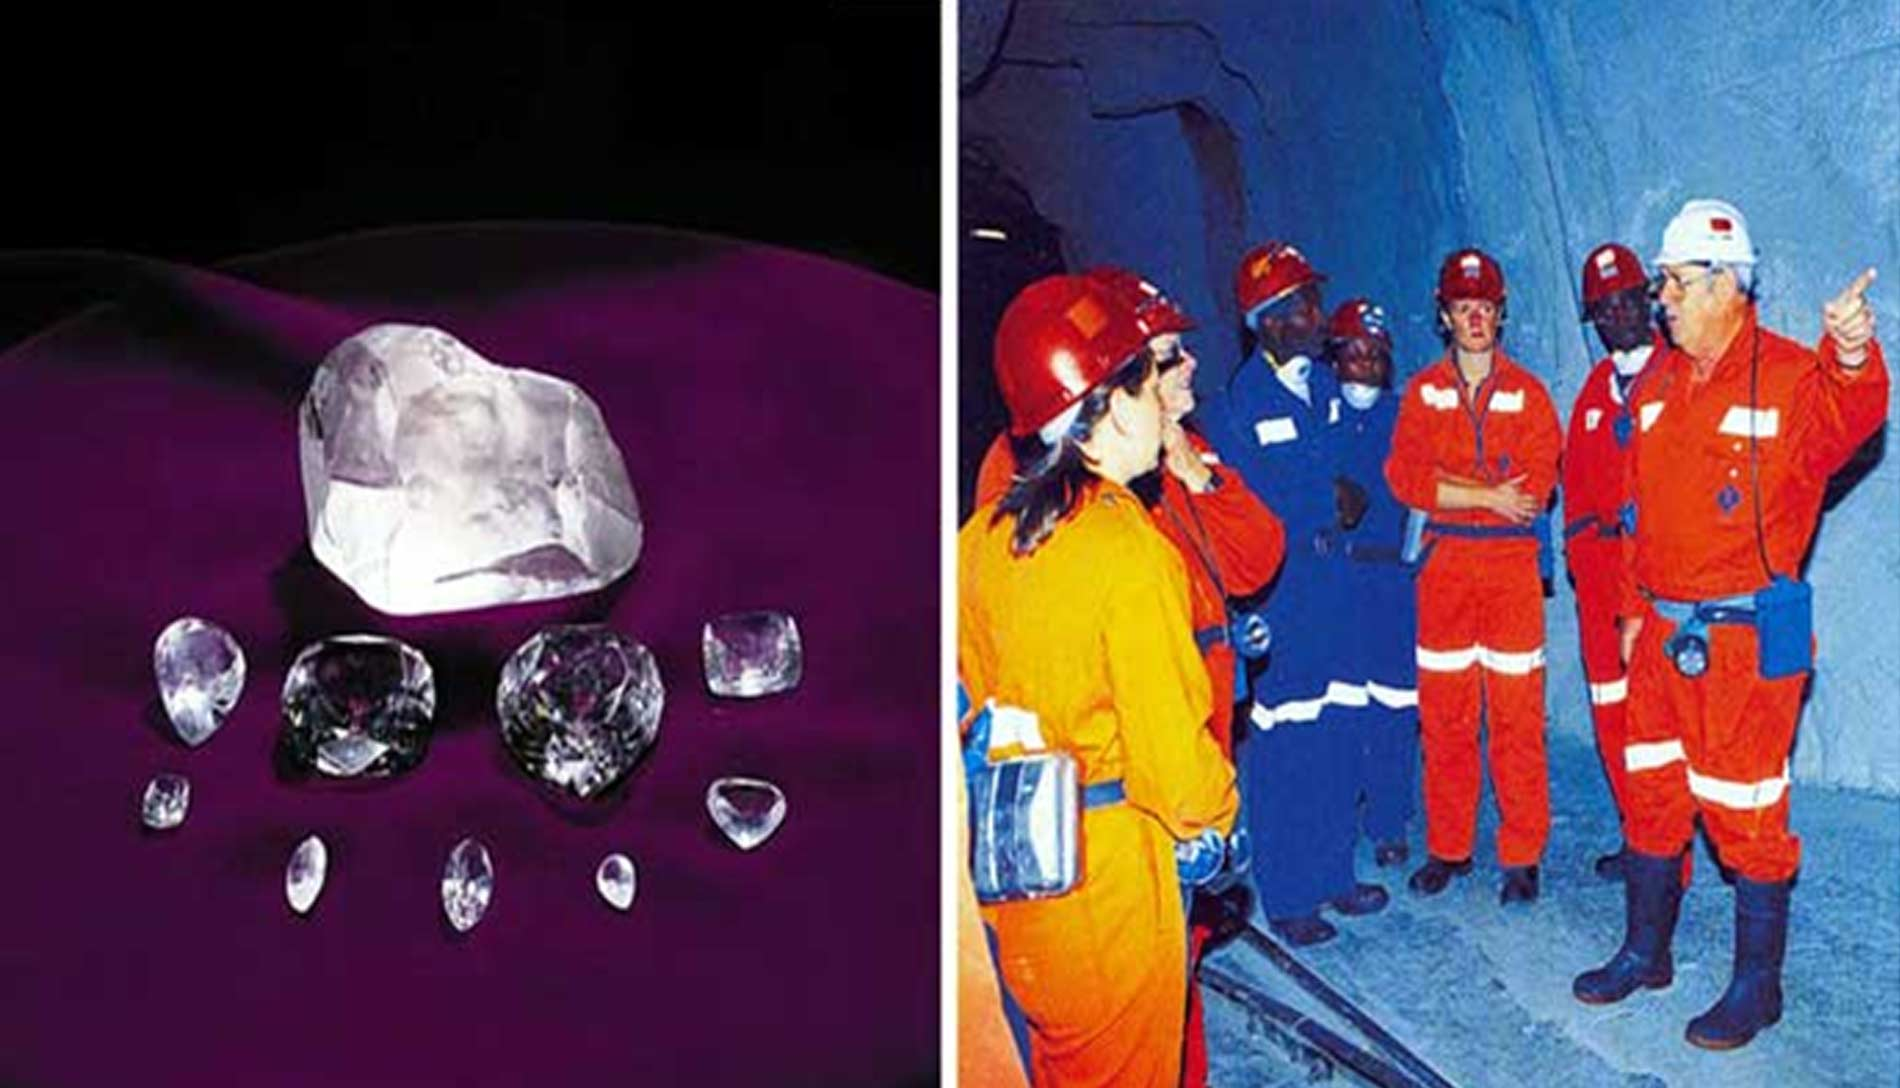 our operations jv underground kem mining ekapa petra diamond kimberley diamonds mines dsc